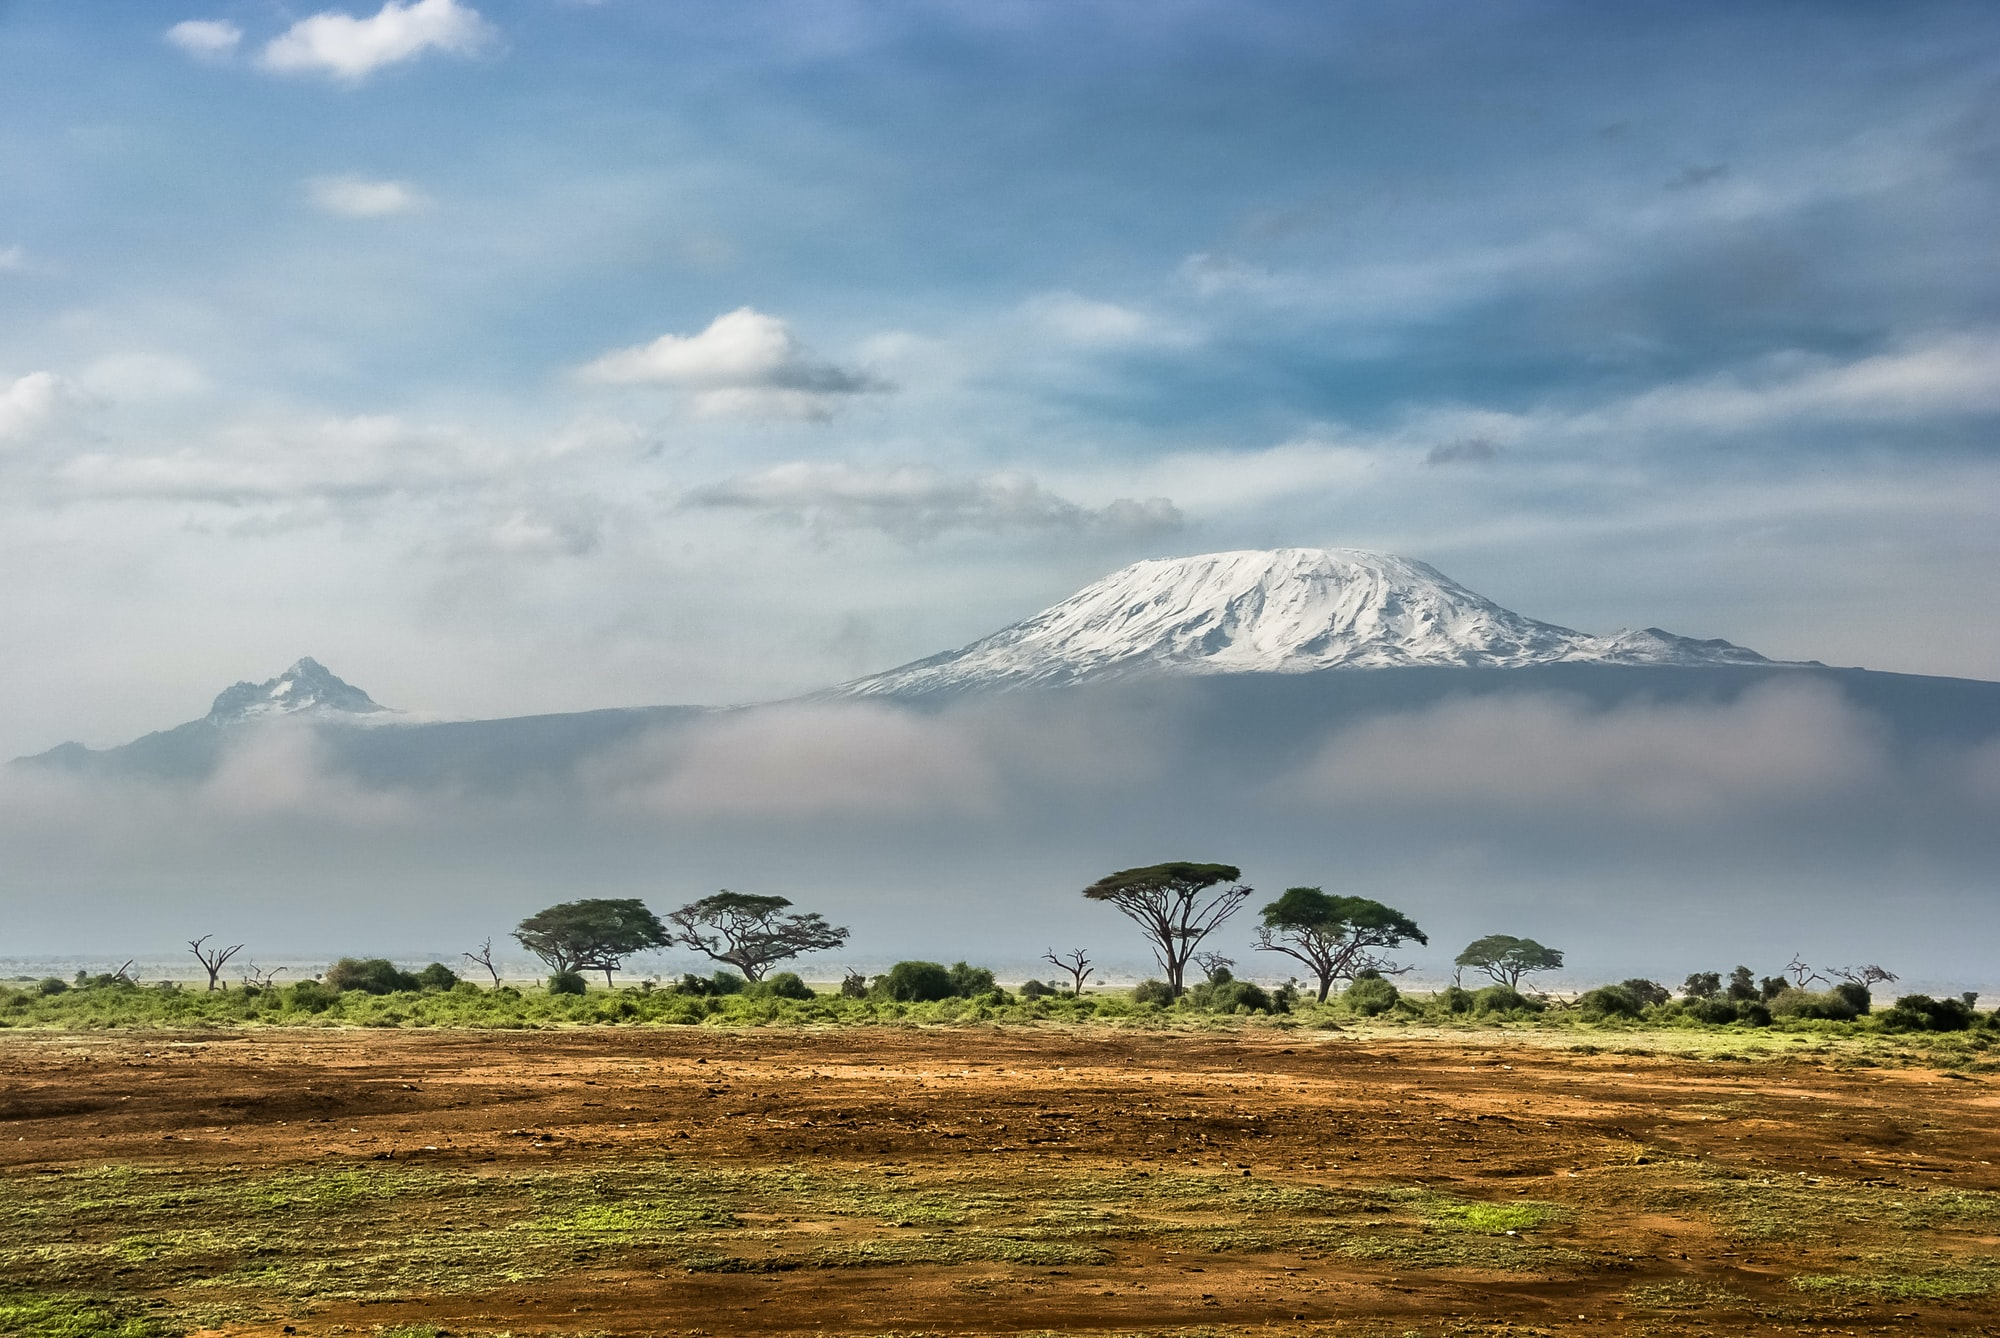 View of Kilimanjaro from Amboseli National Park, Kenya.